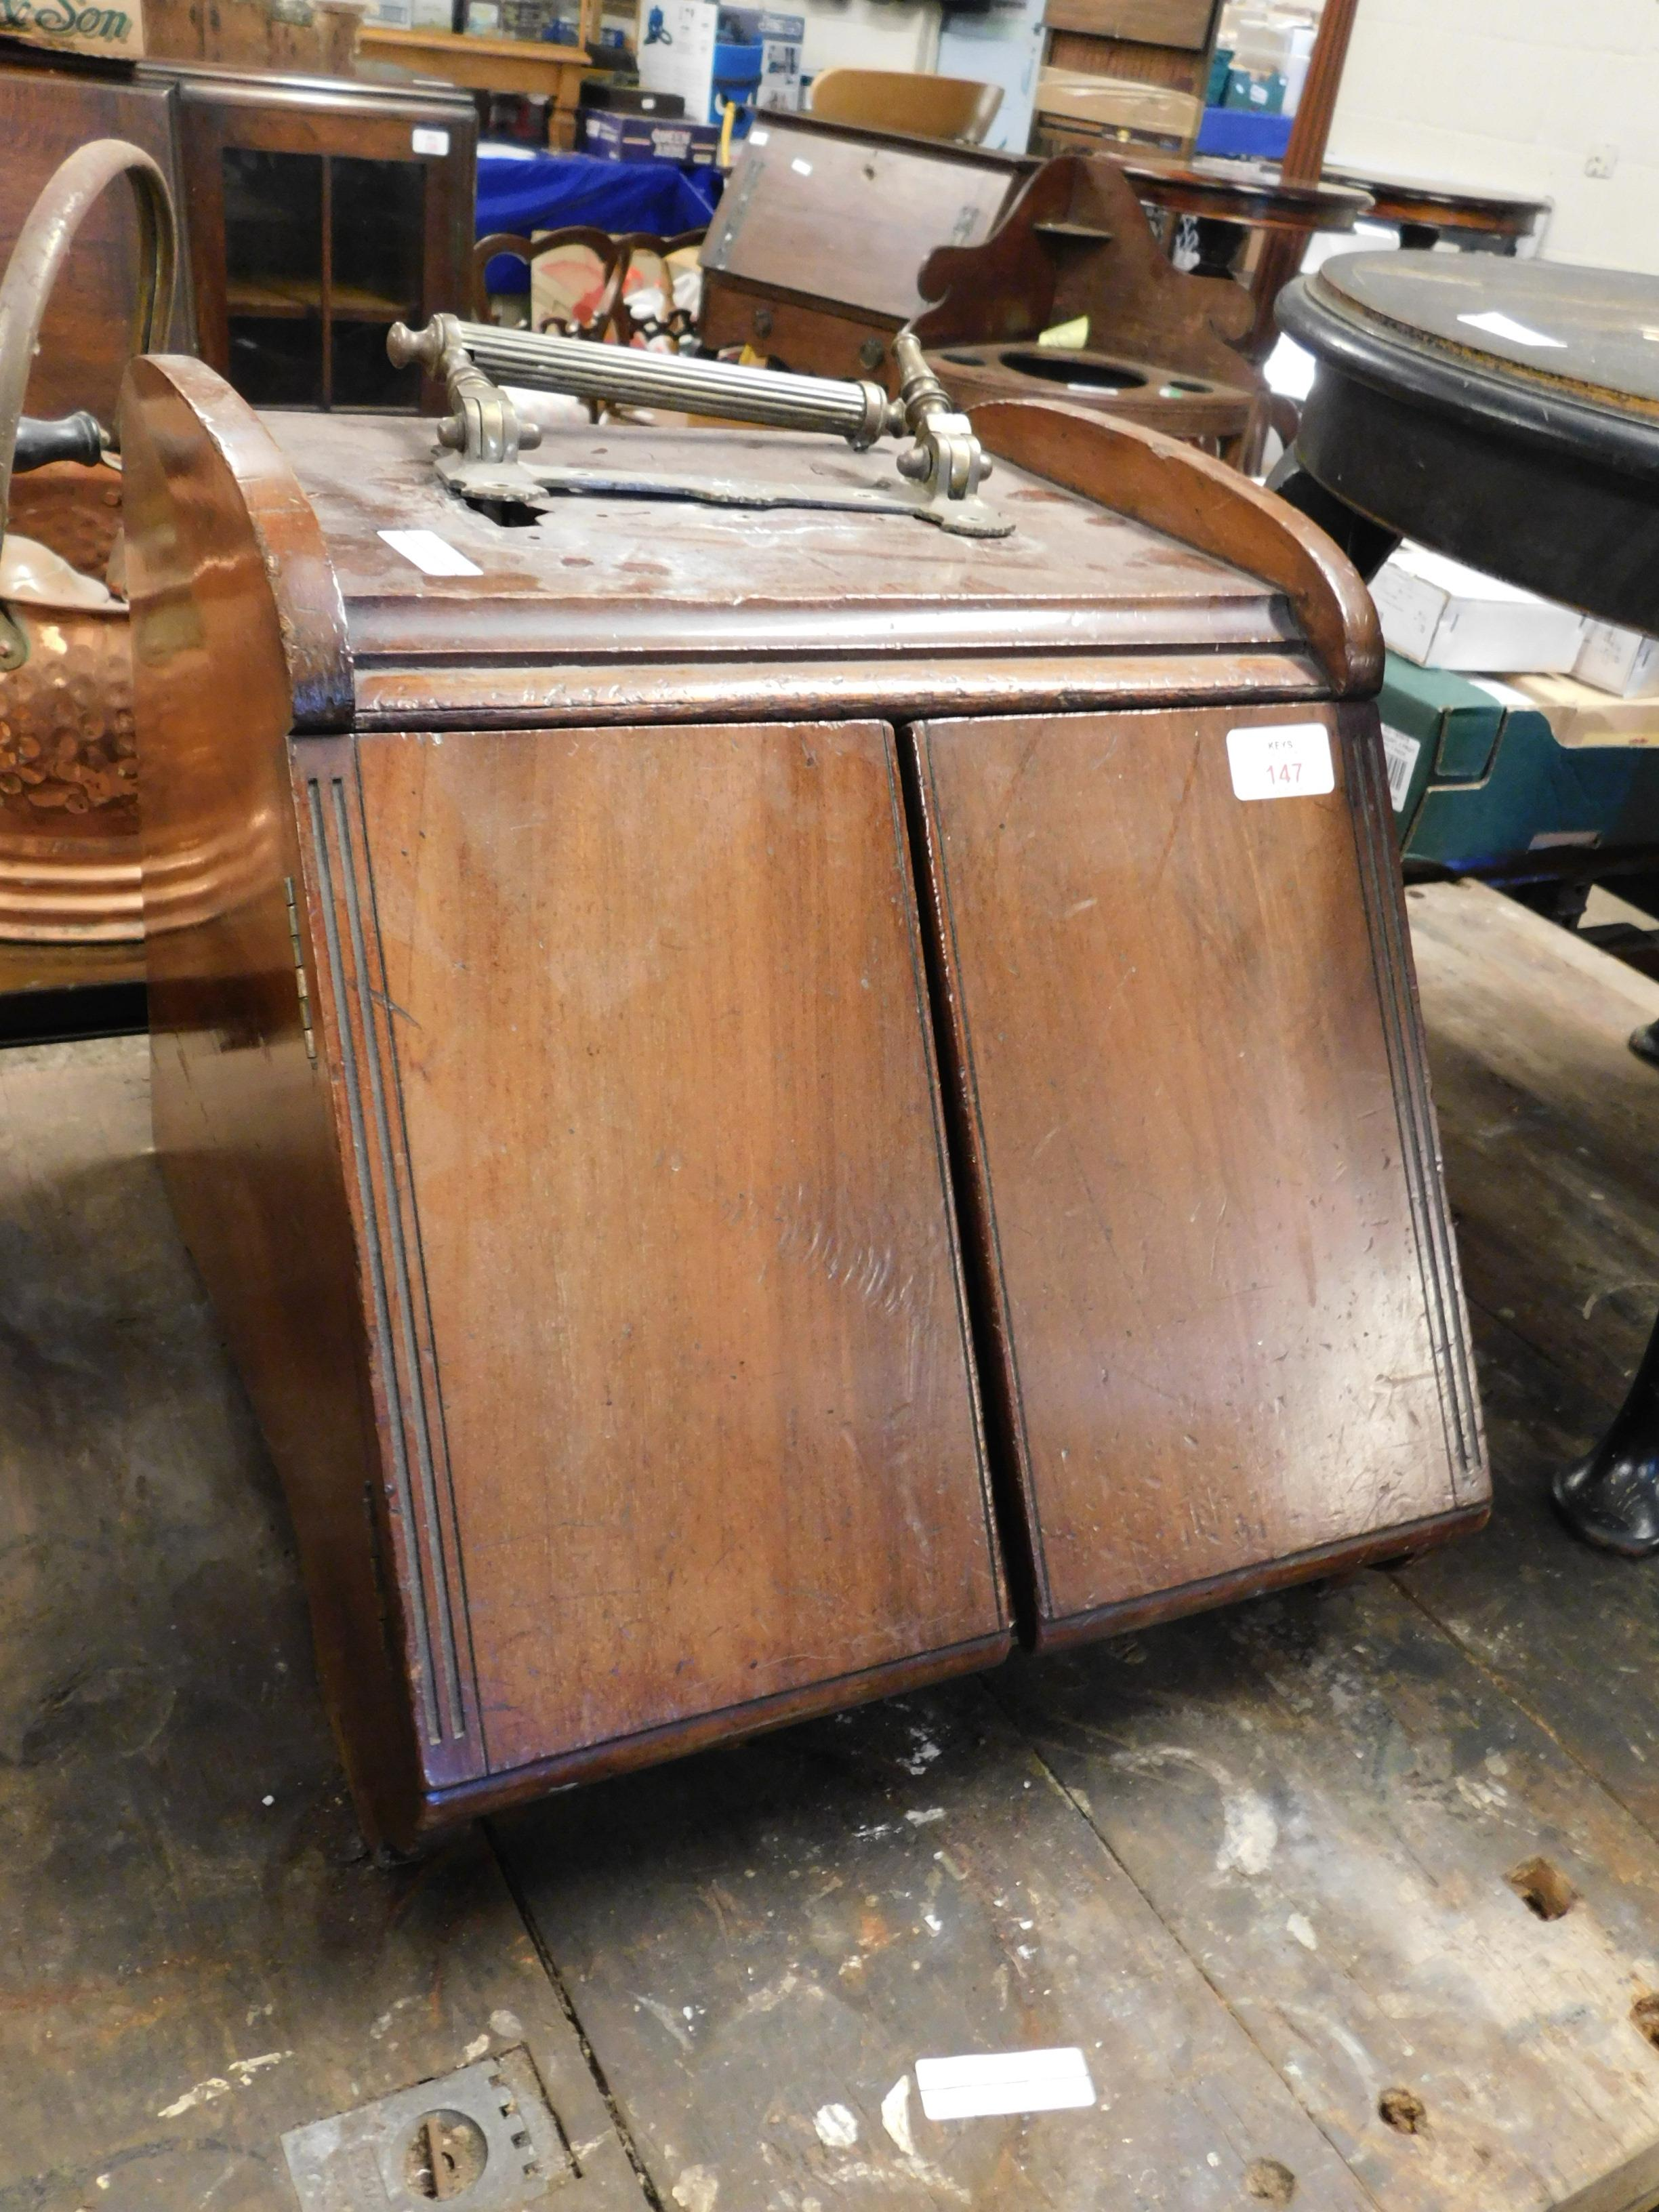 Lot 147 - EDWARDIAN MAHOGANY COAL BOX WITH BRASS TOP HANDLE AND OPENING FRONT (A/F)